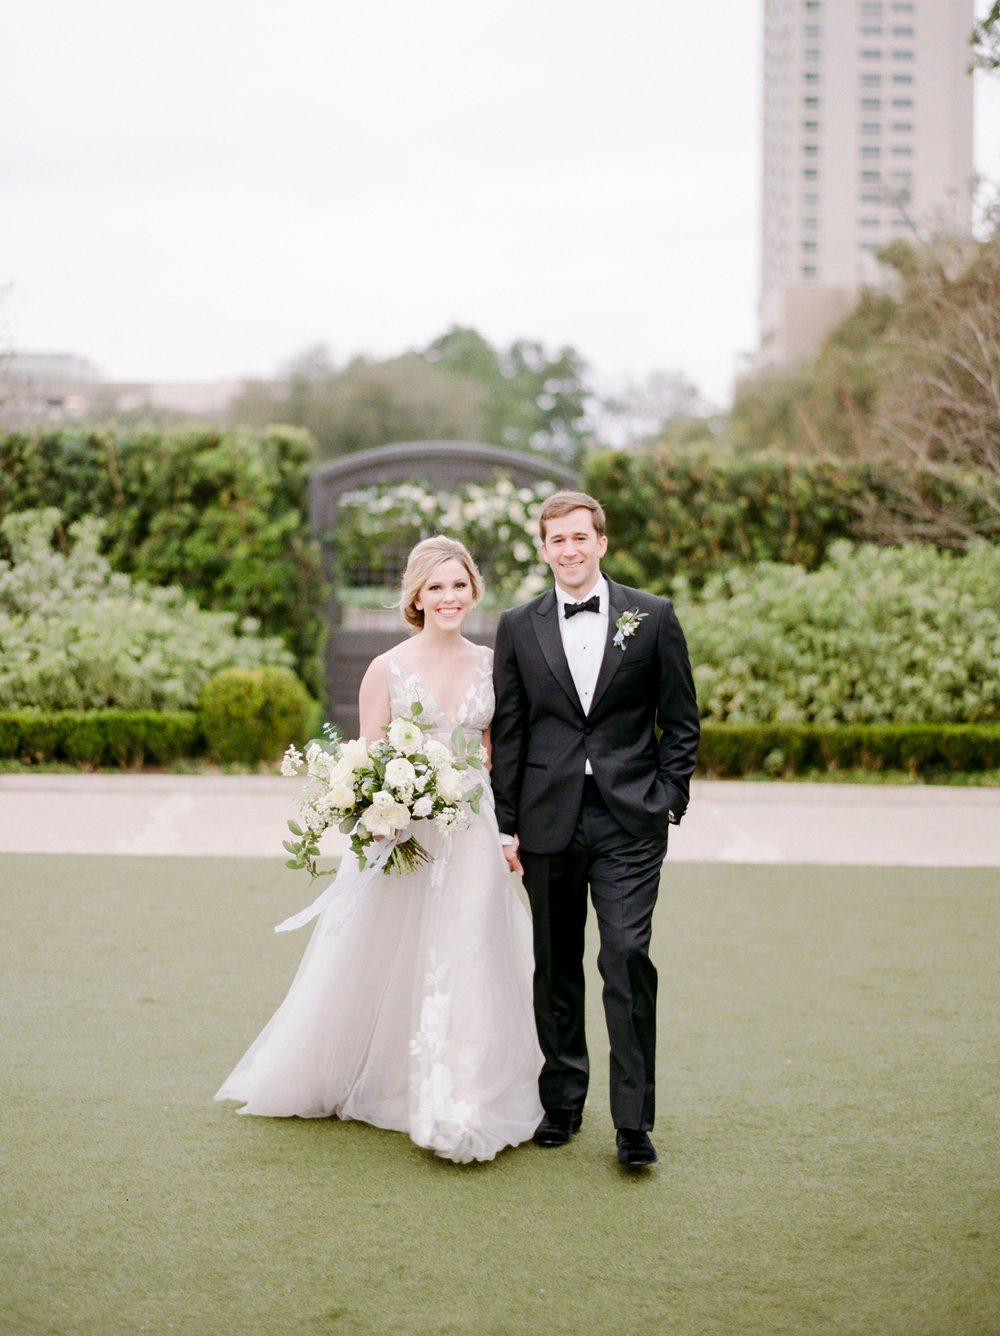 McGovern-Centennial-Gardens-Houston-Texas-Wedding-Venue-Josh-Dana-Fernandez-Photography-Film-Destination-Fine-Art-Luxury-Top-Best-Austin-Dallas-Magnolia-Rouge-Jennifer-Laura-Design-16.jpg